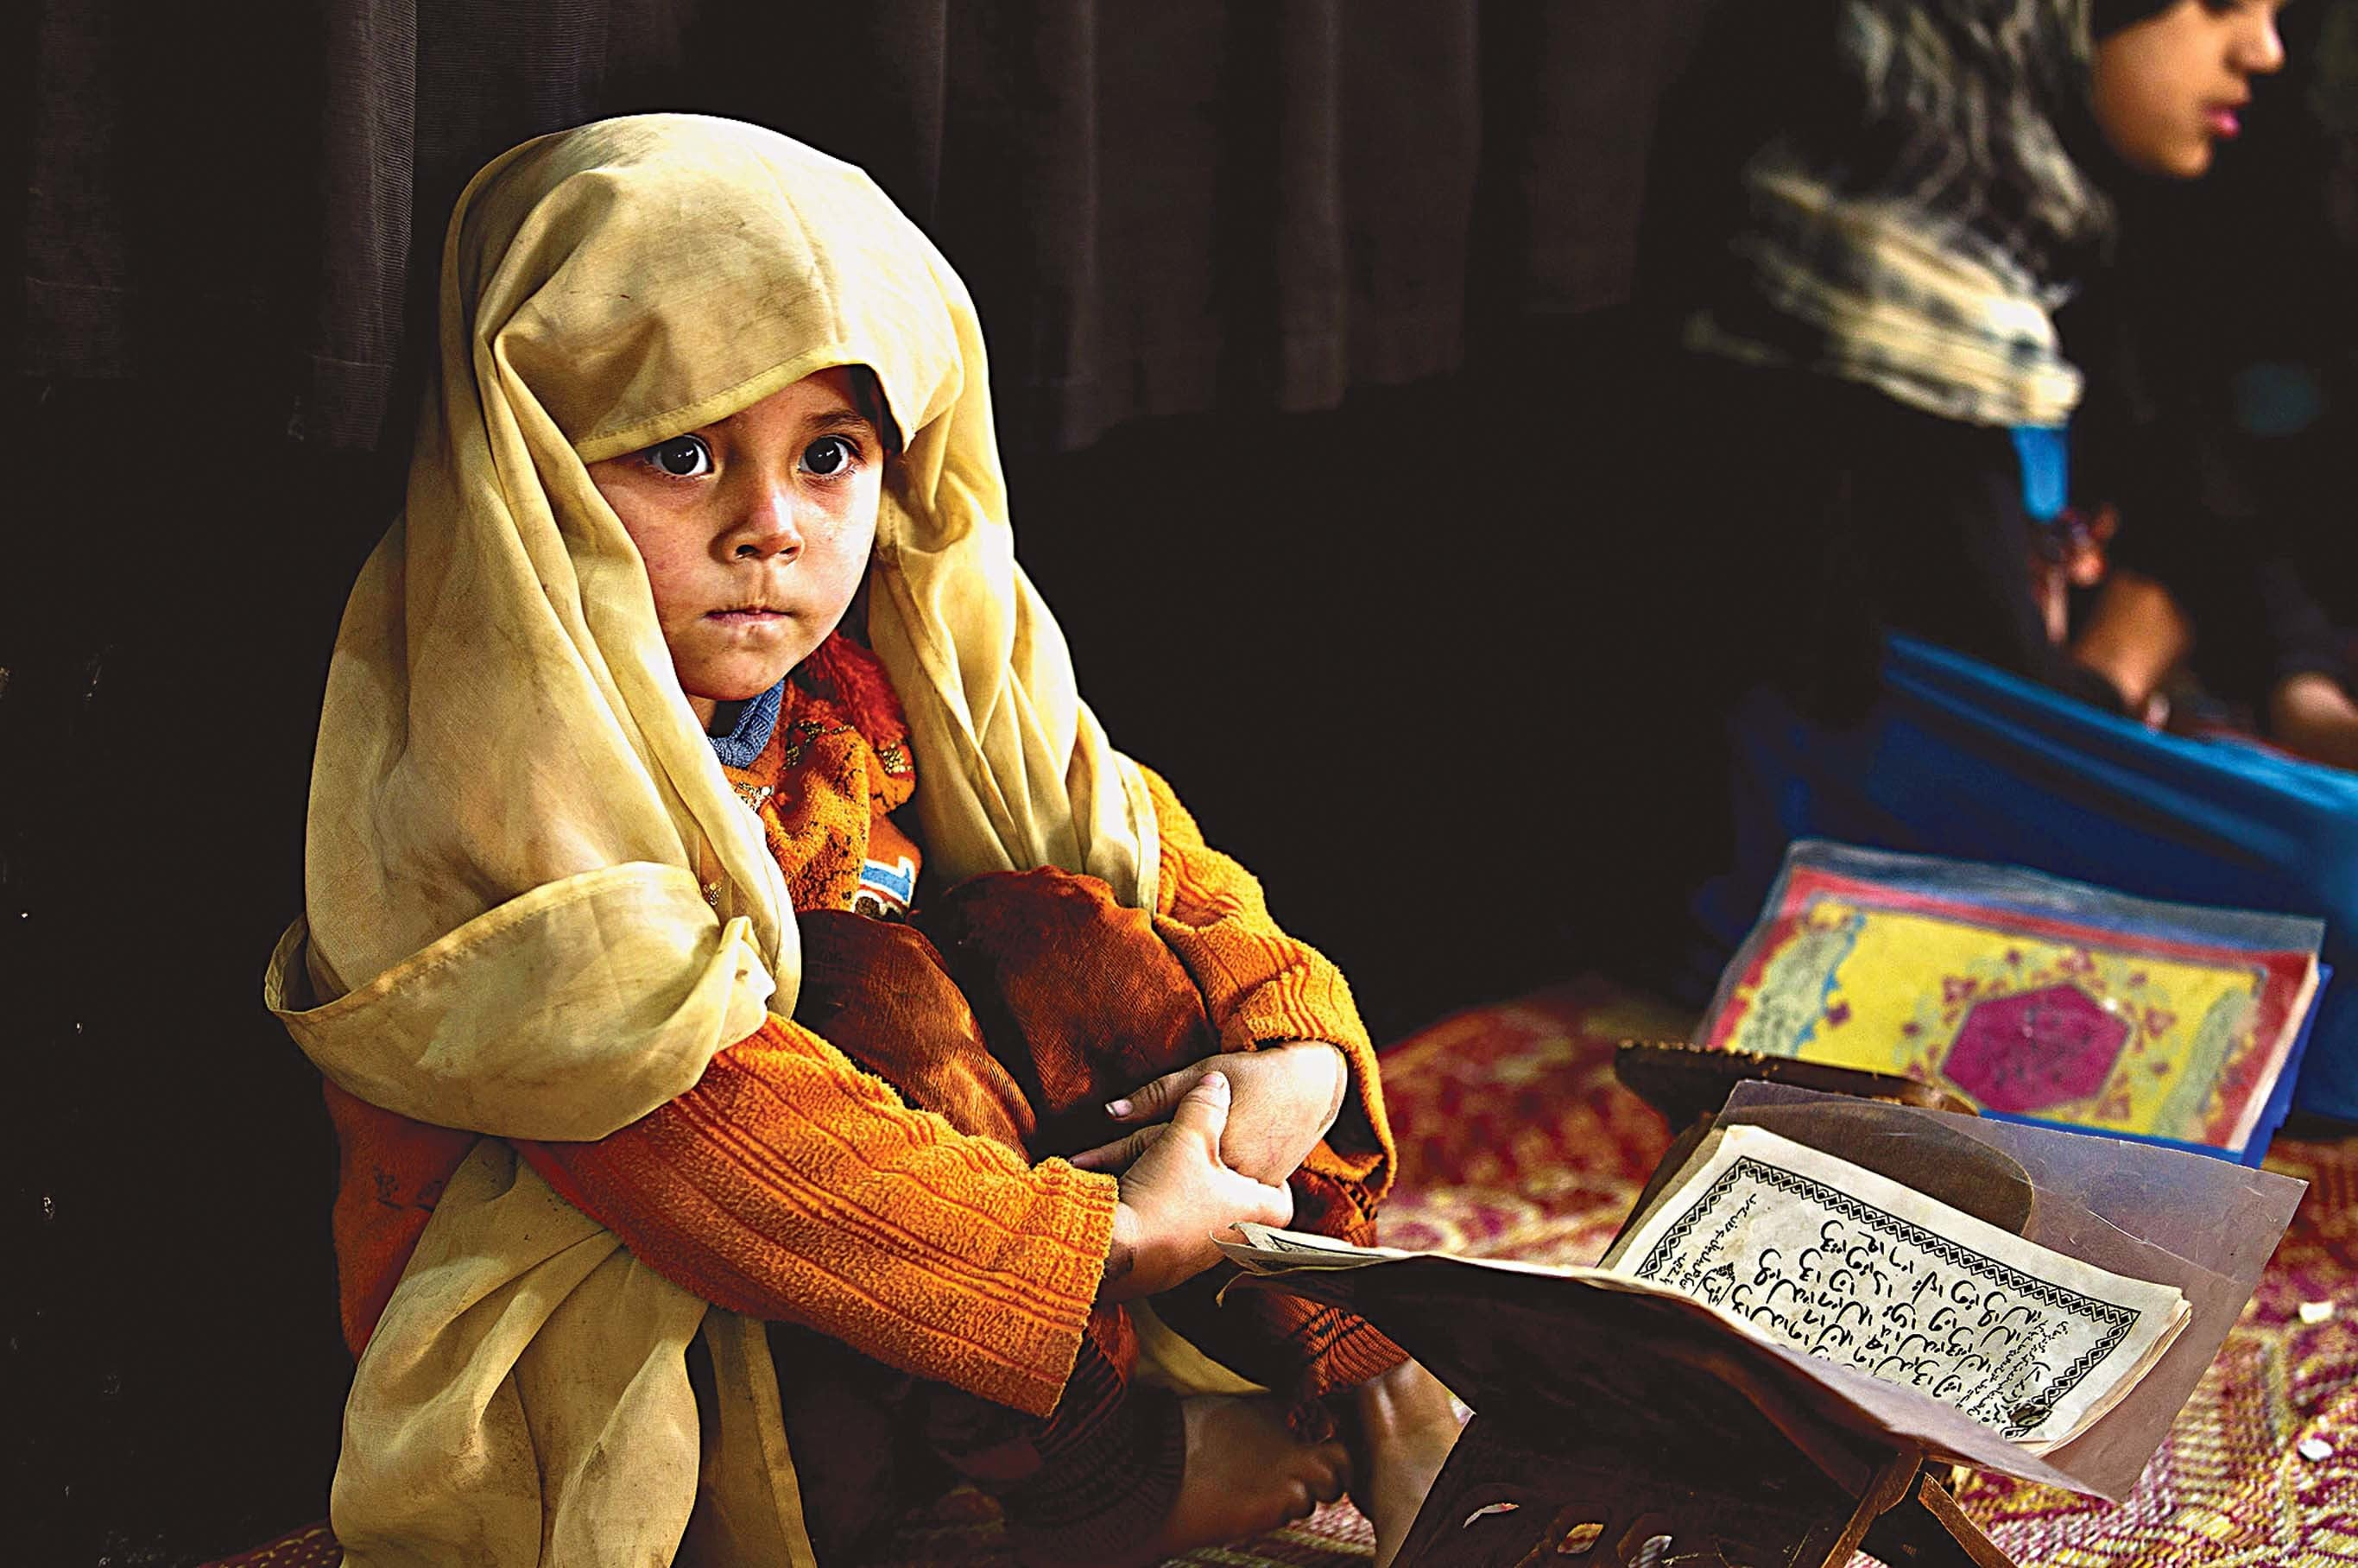 Madressahs and Islamic education have become the focus of extensive policy and academic discourse. — AP